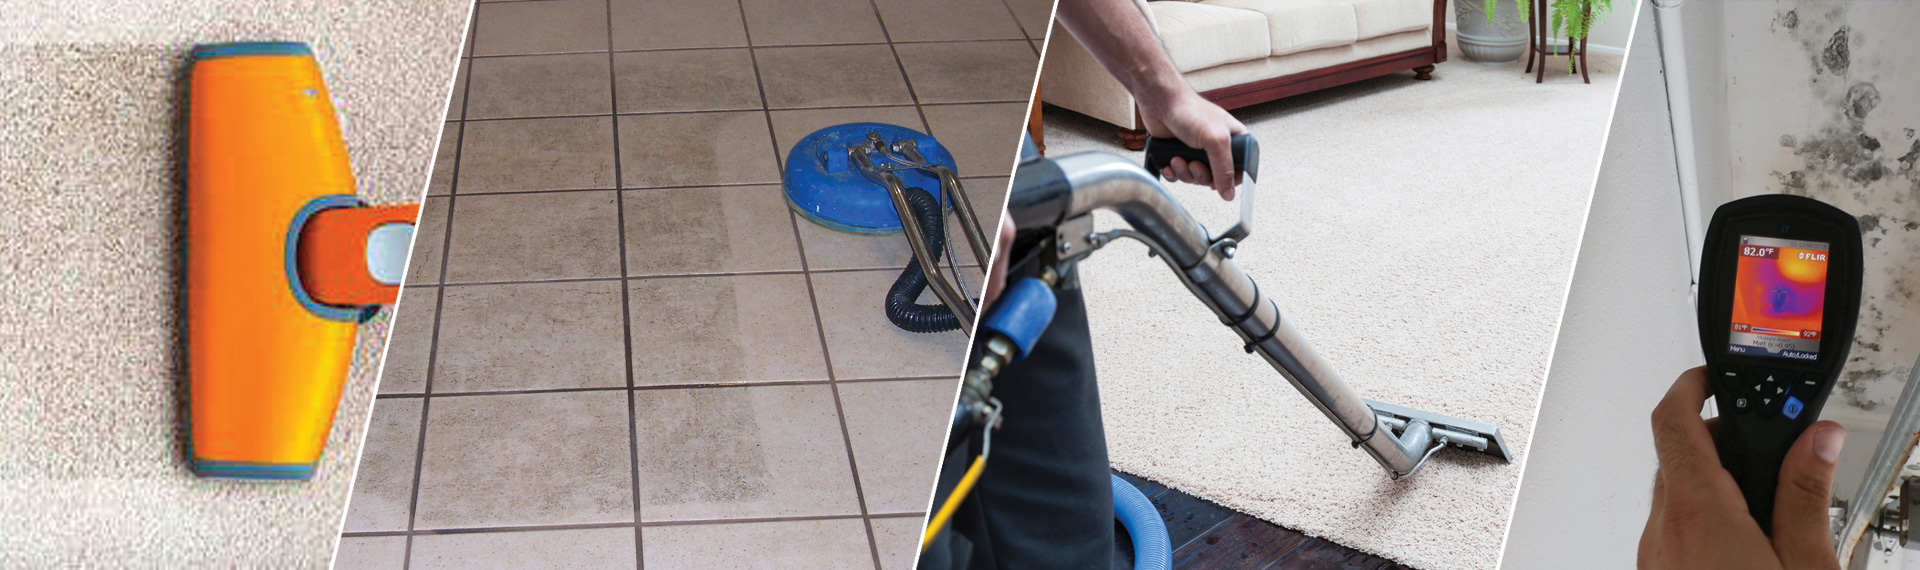 City Carpet Cleaners & Water Damage Restoration Friendswood TX